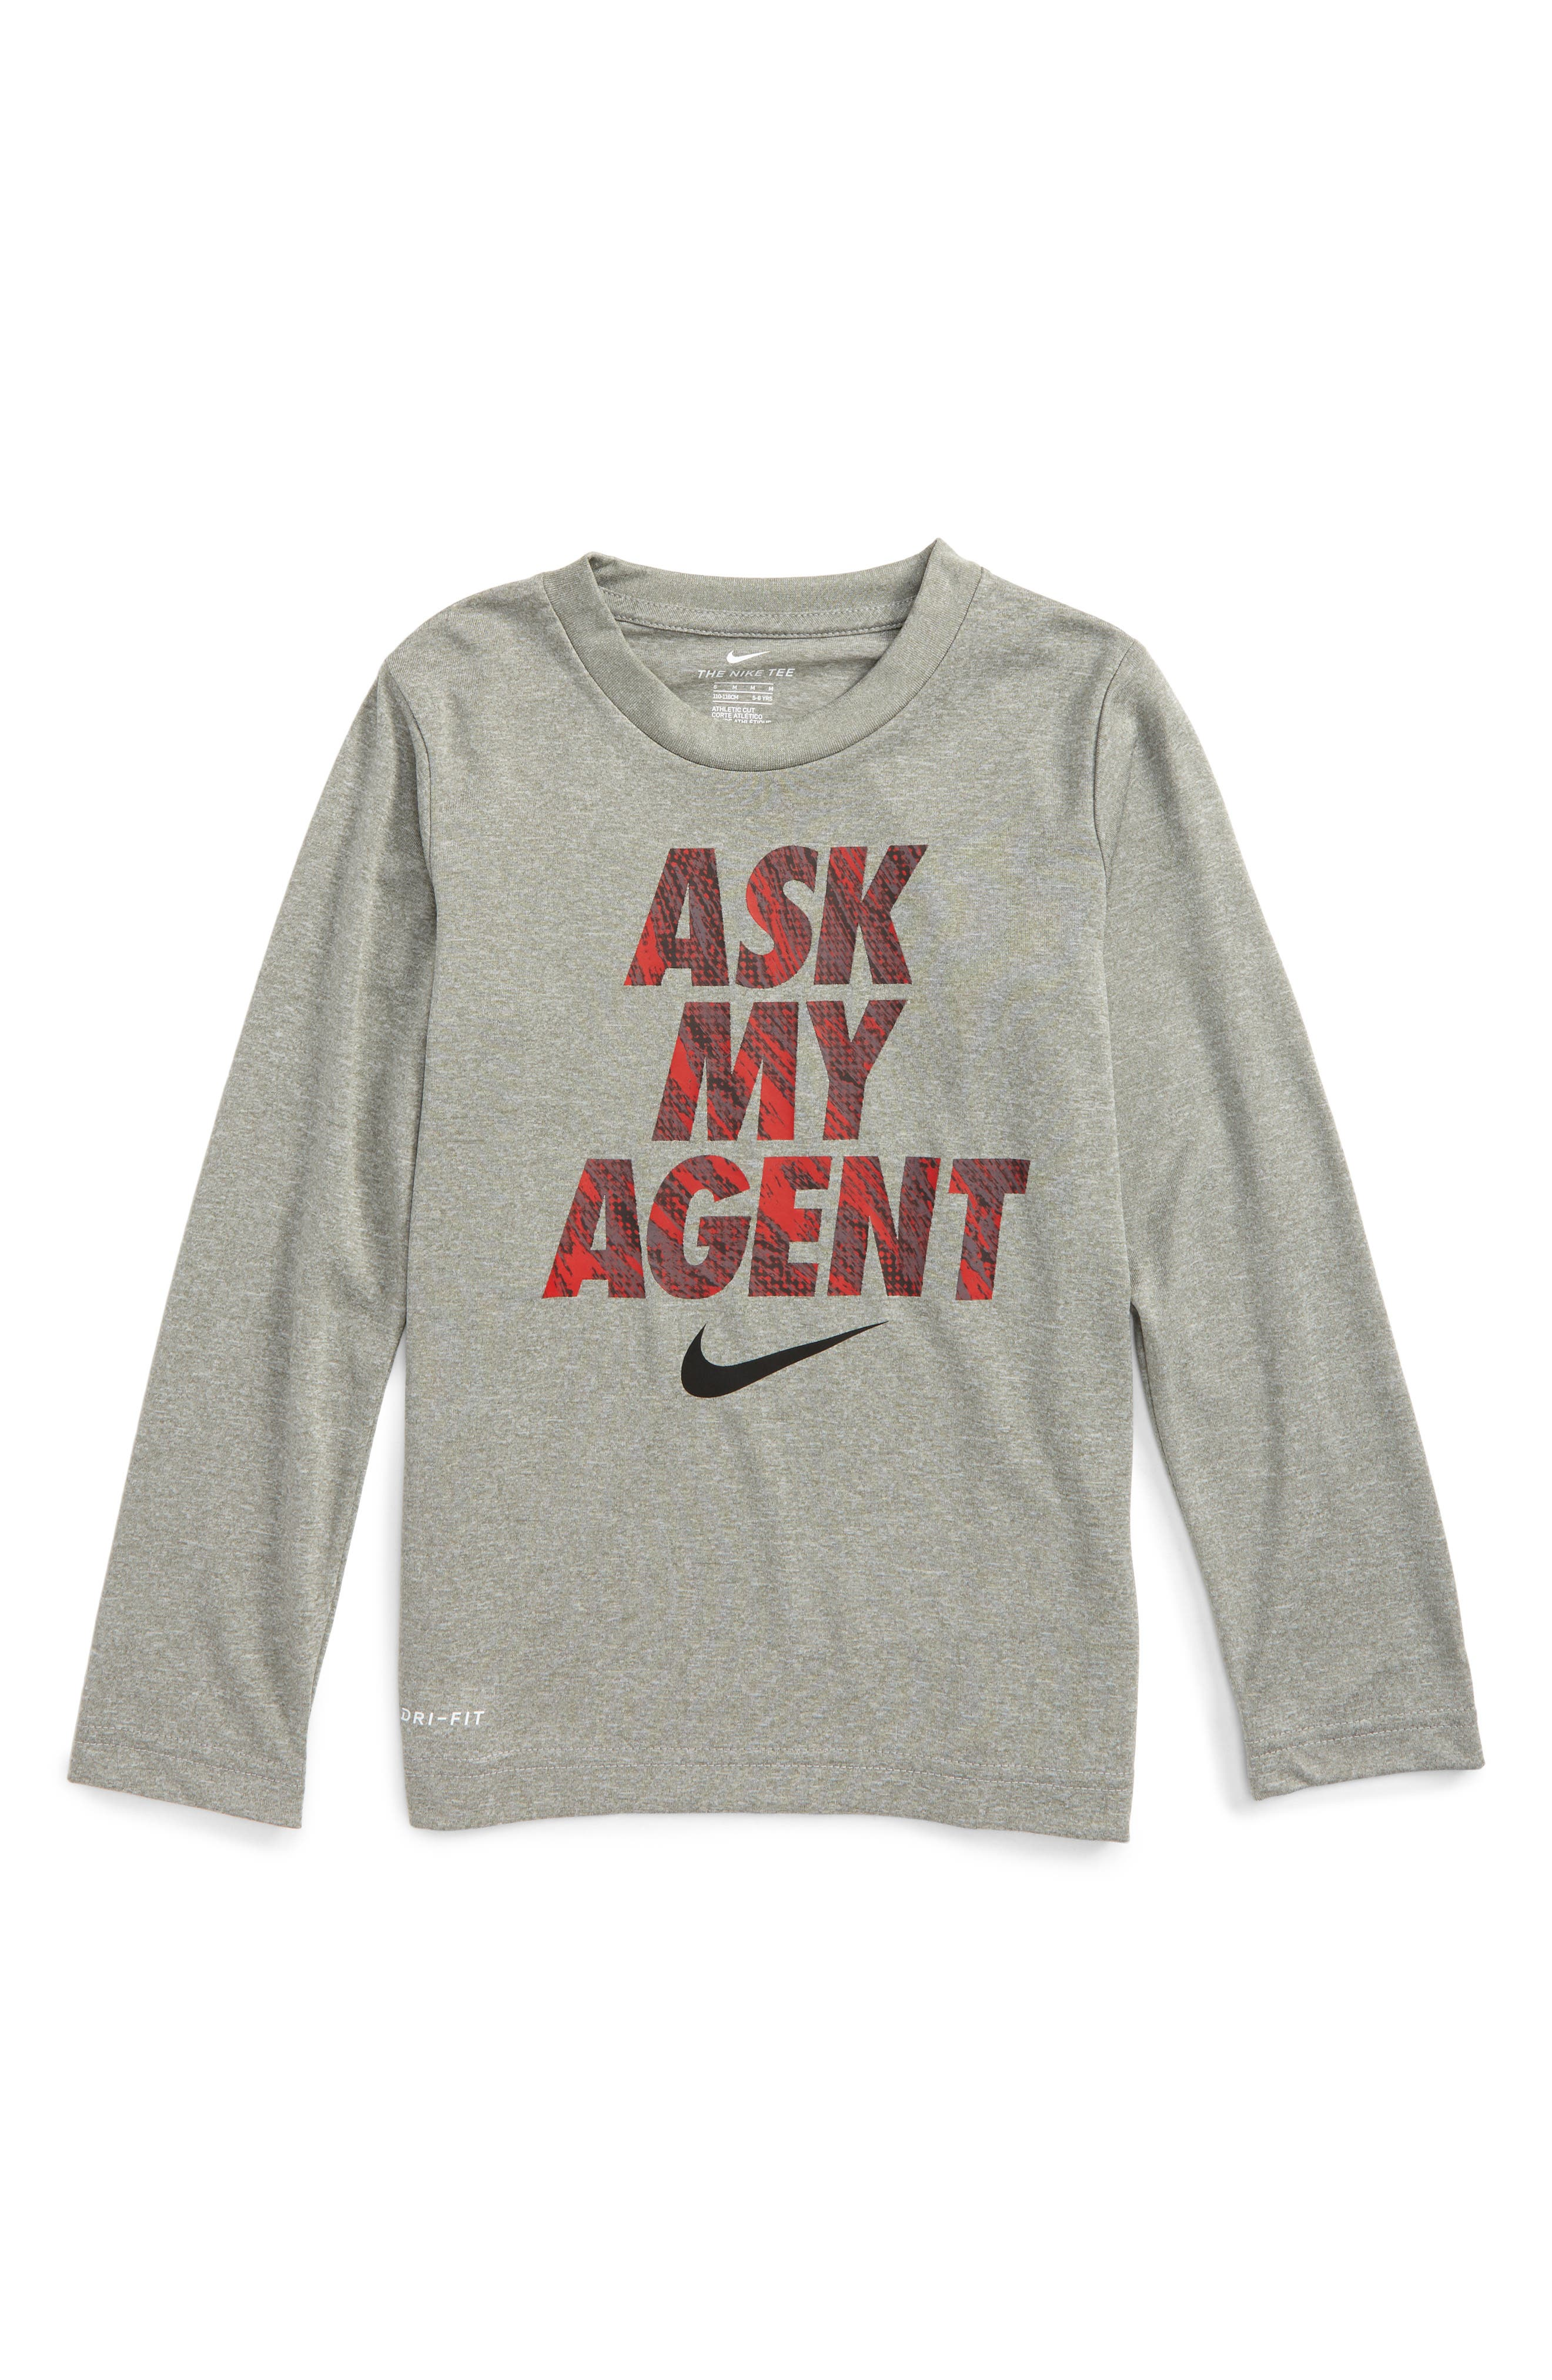 Nike Dry Ask My Agent Graphic T-Shirt (Toddler Boys & Little Boys)